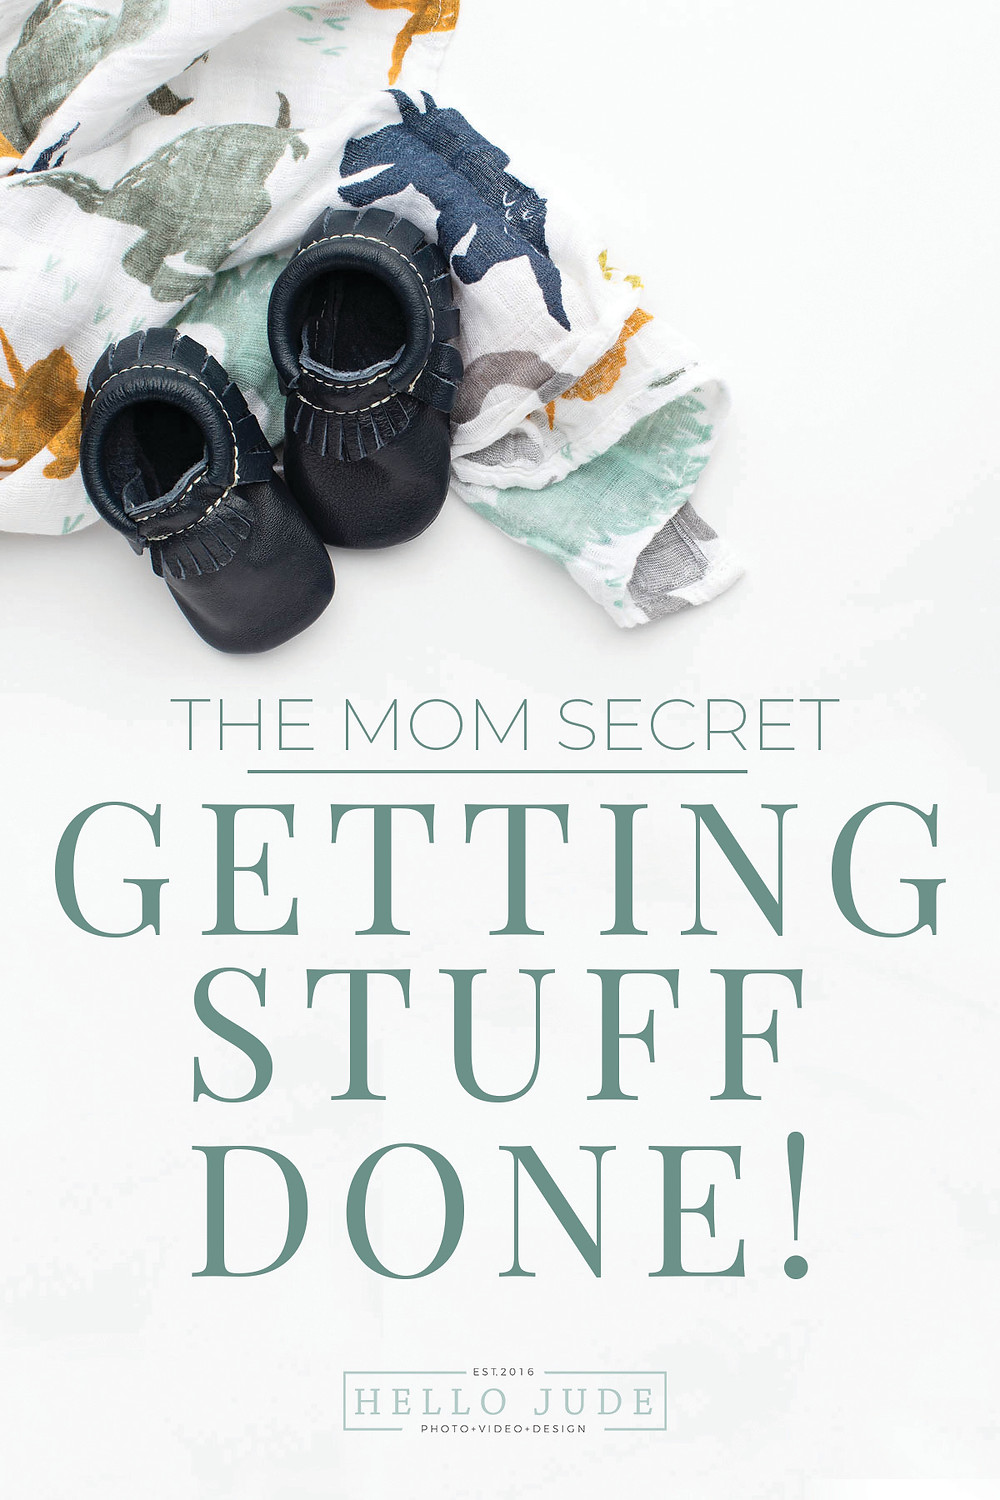 The secret for moms who want to get stuff done - Hello Jude Photography